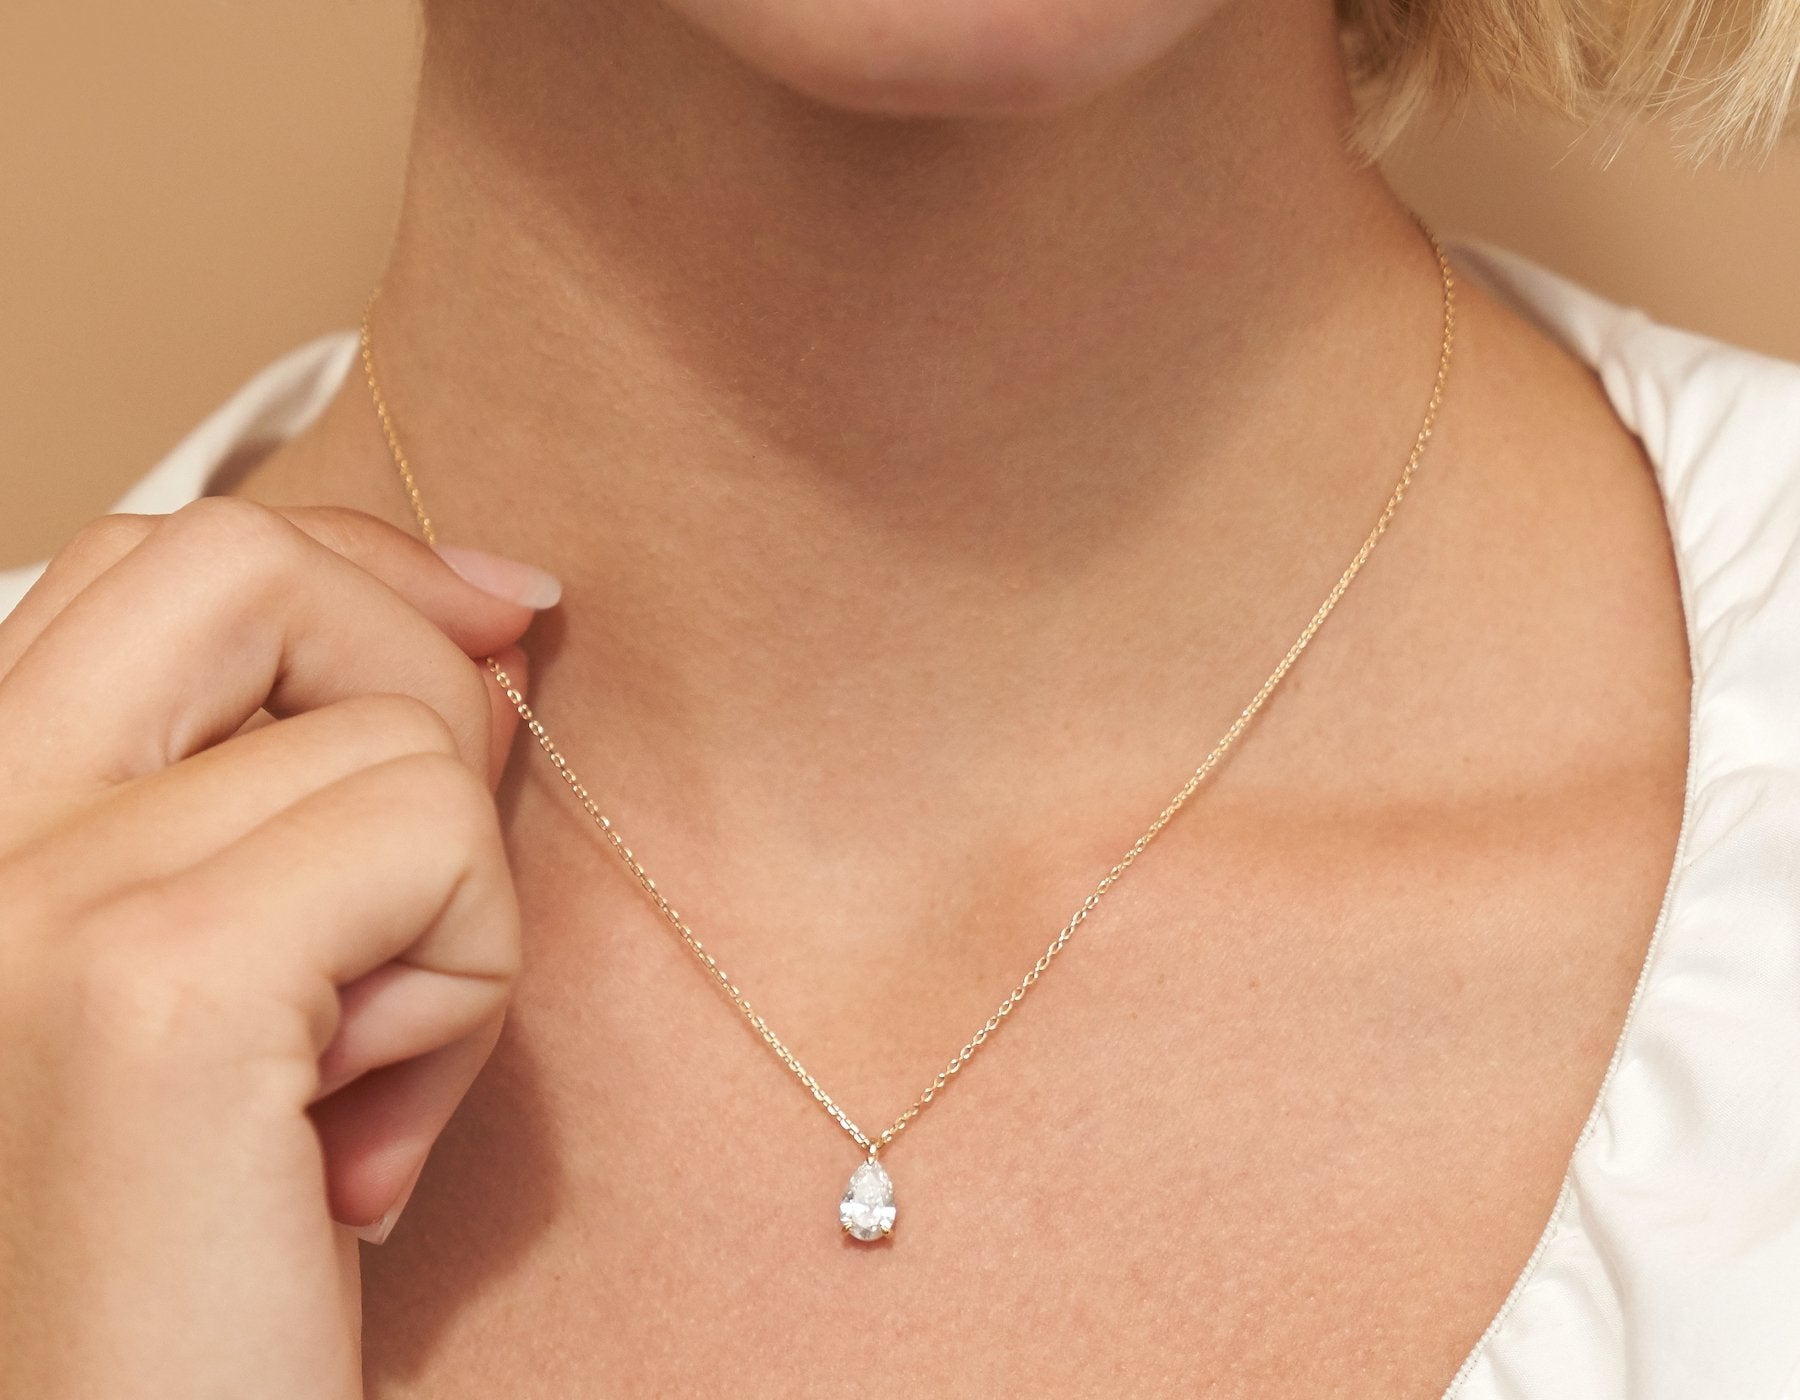 Model wearing Vrai 14K solid gold solitaire pear diamond pendant necklace 1ct minimalist delicate, 14K White Gold